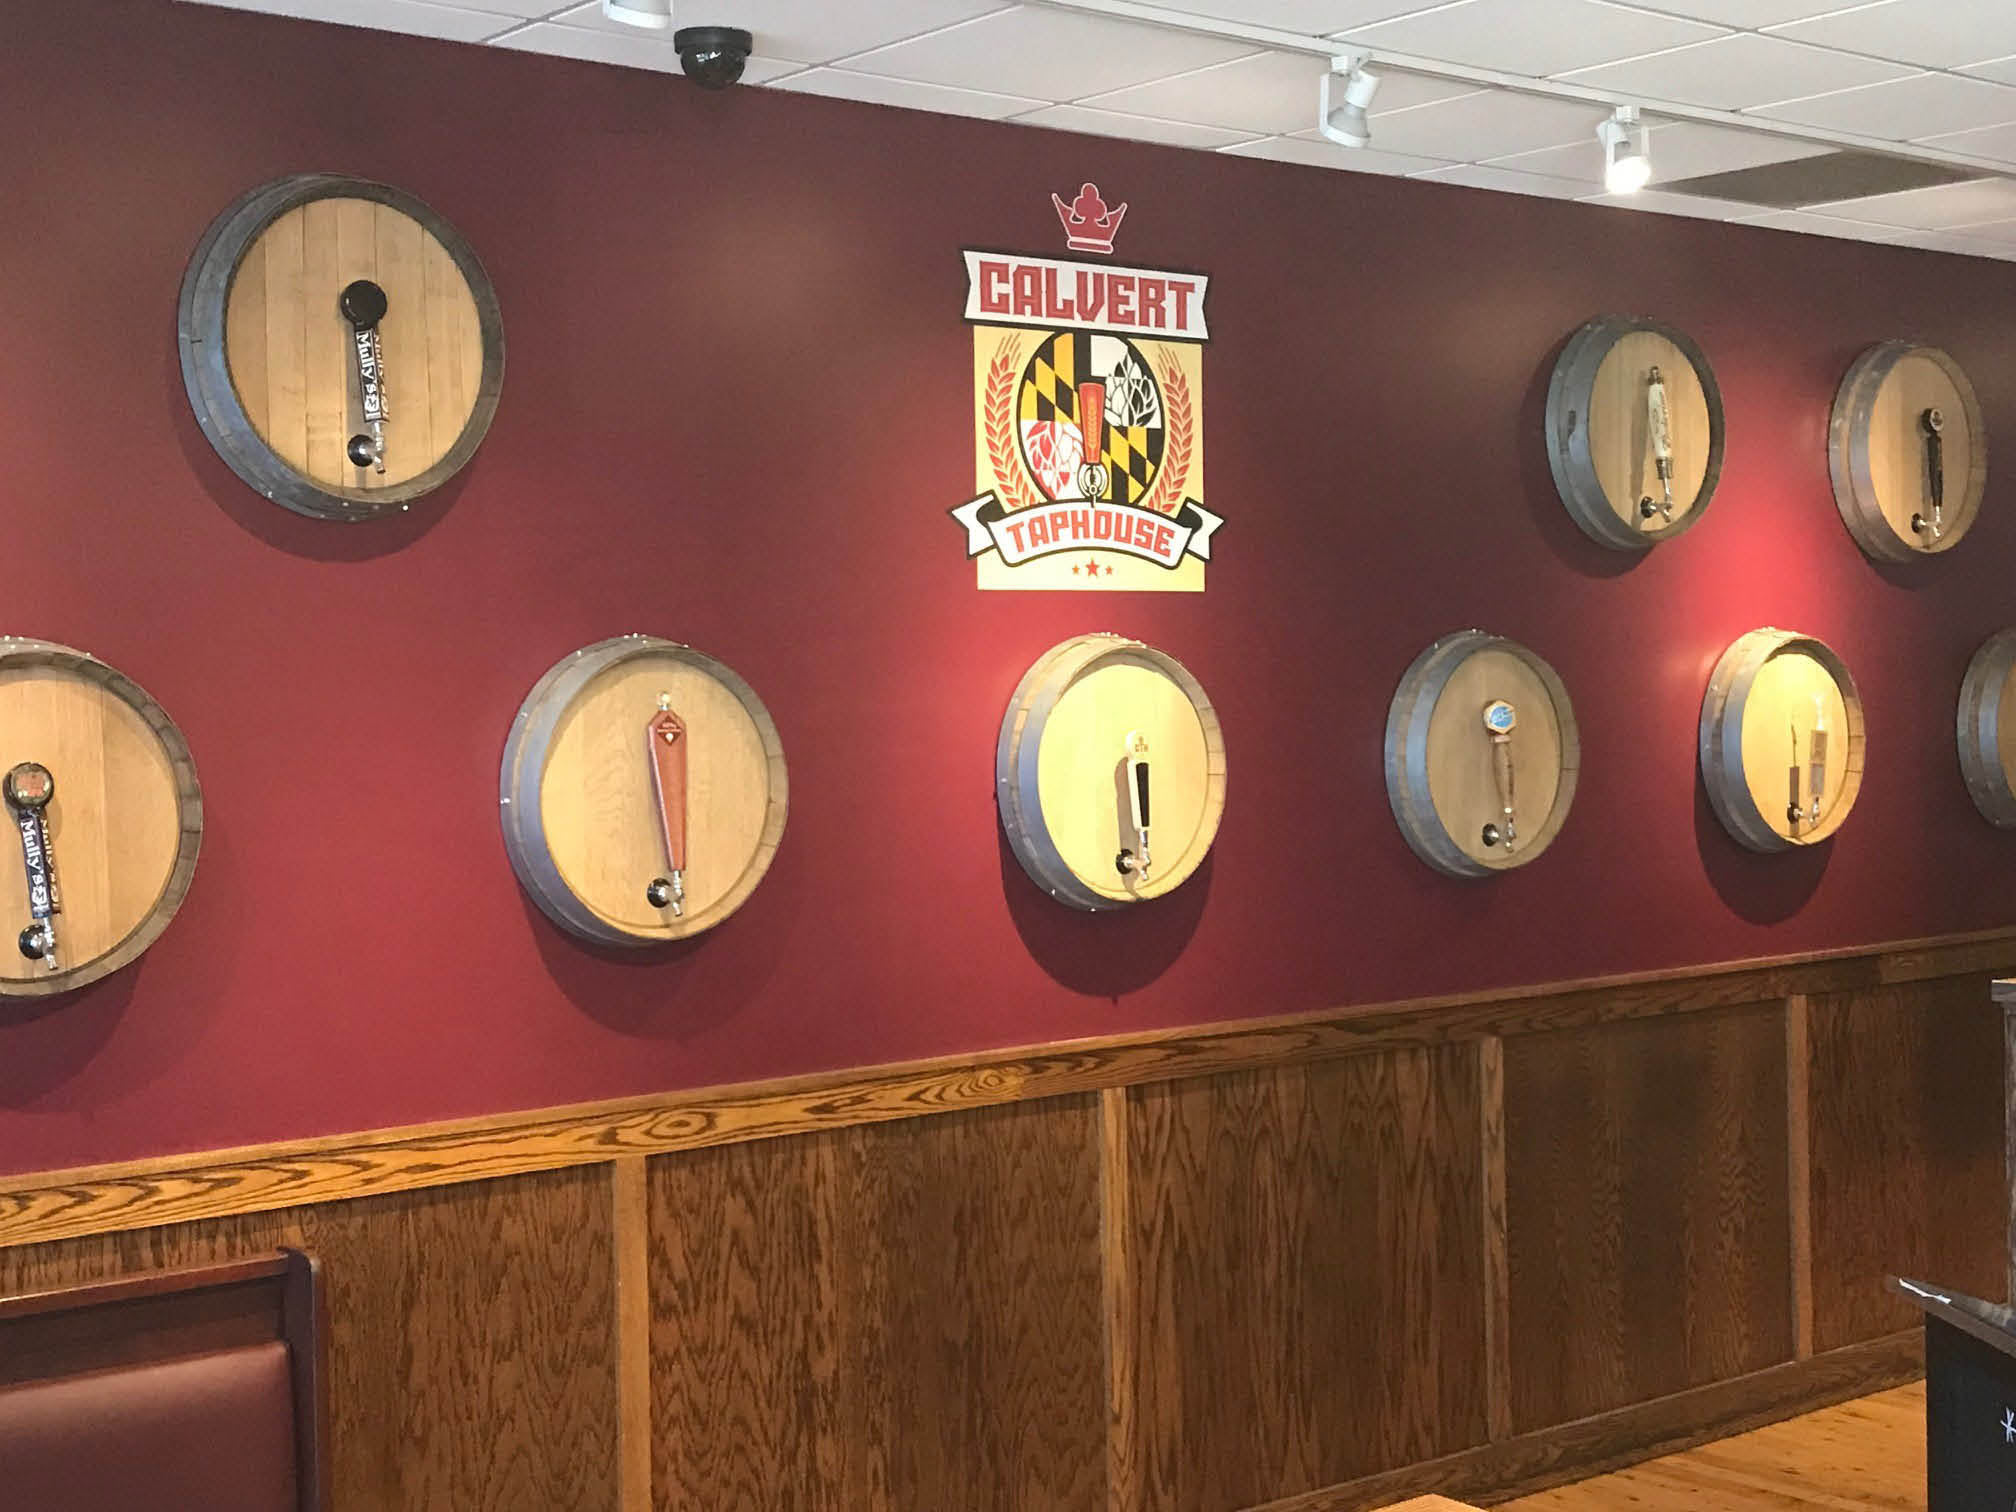 taphouse, family dining, craft beer, catering, prince frederick, md